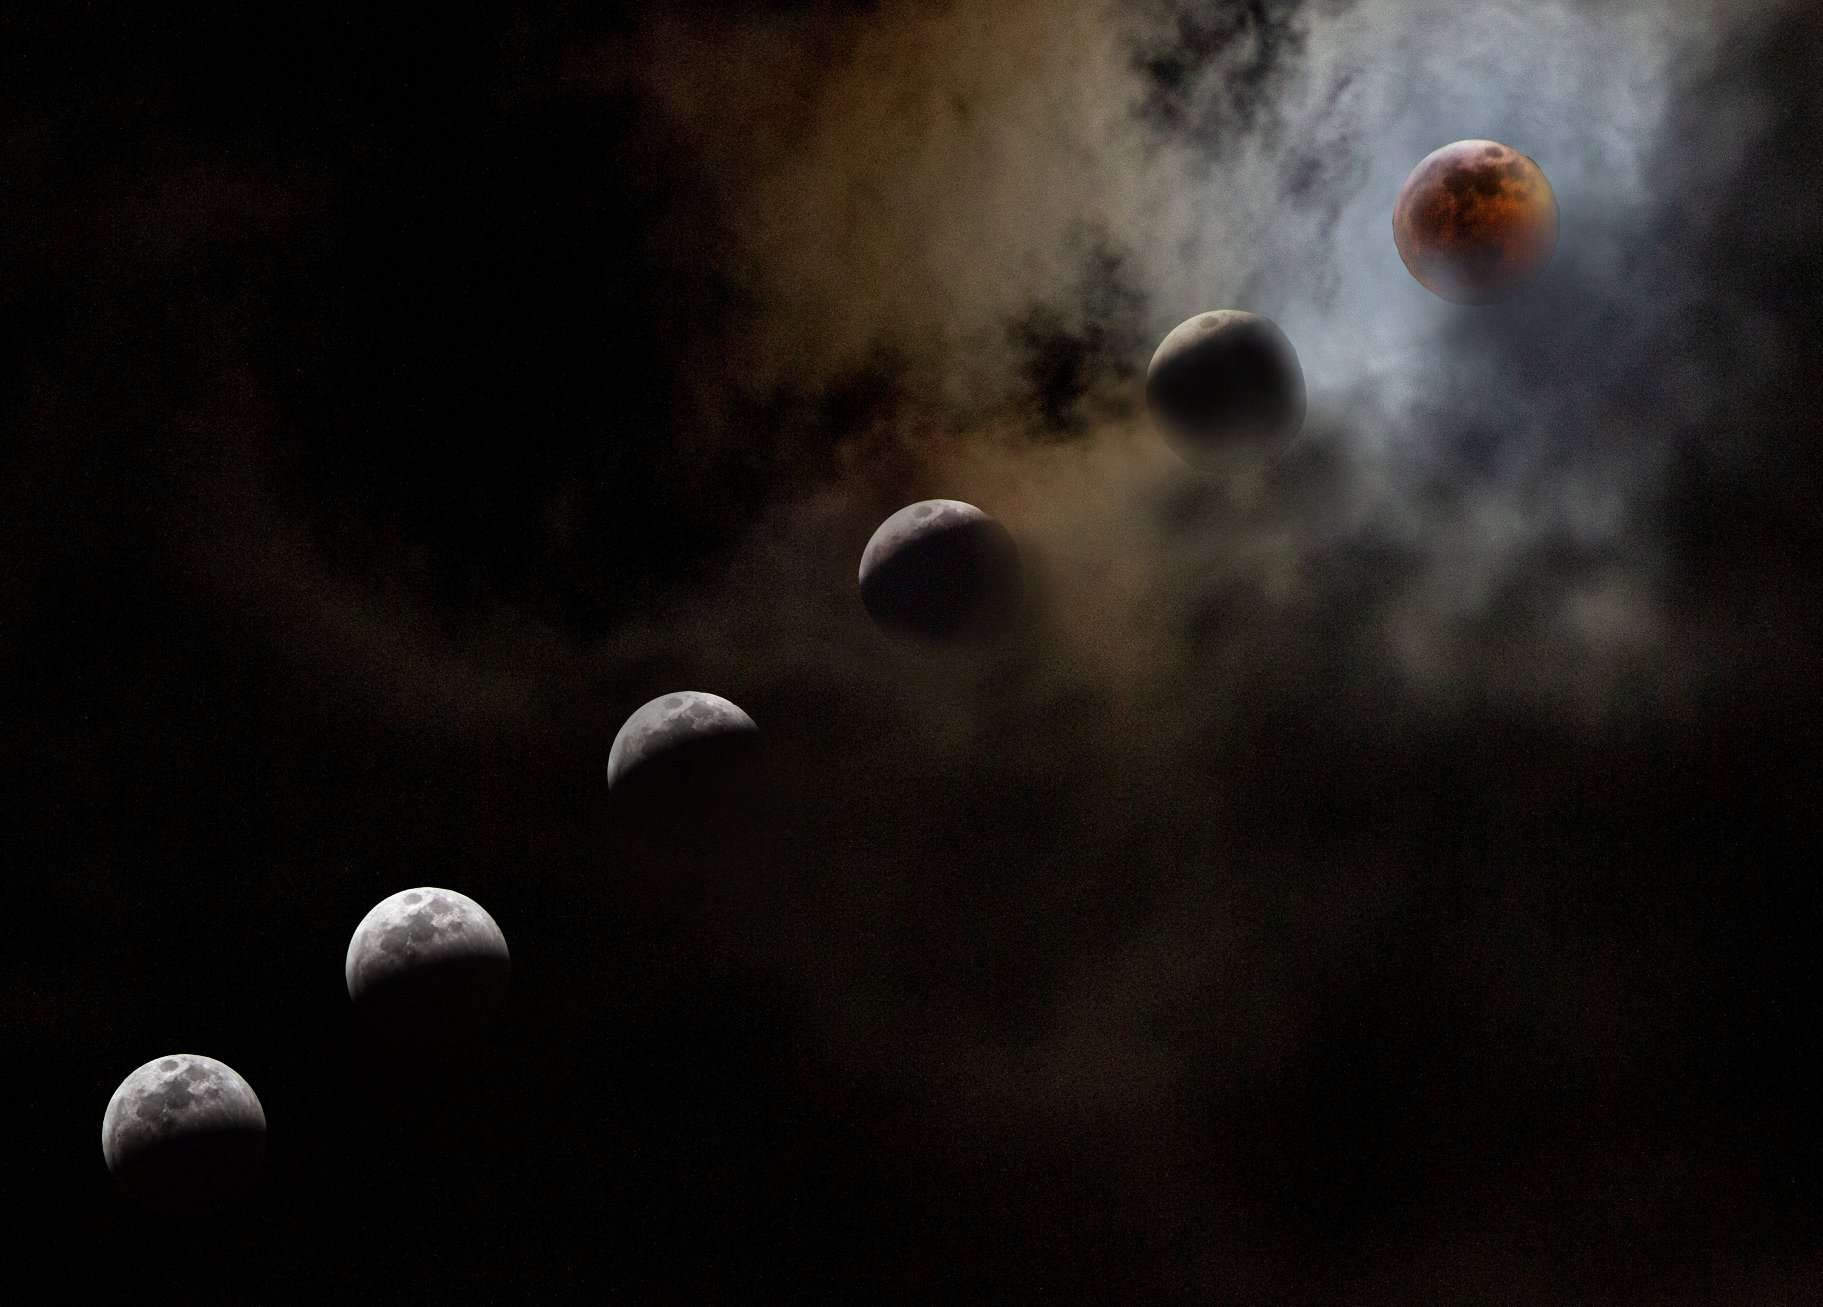 beautiful image of the lunar eclipse